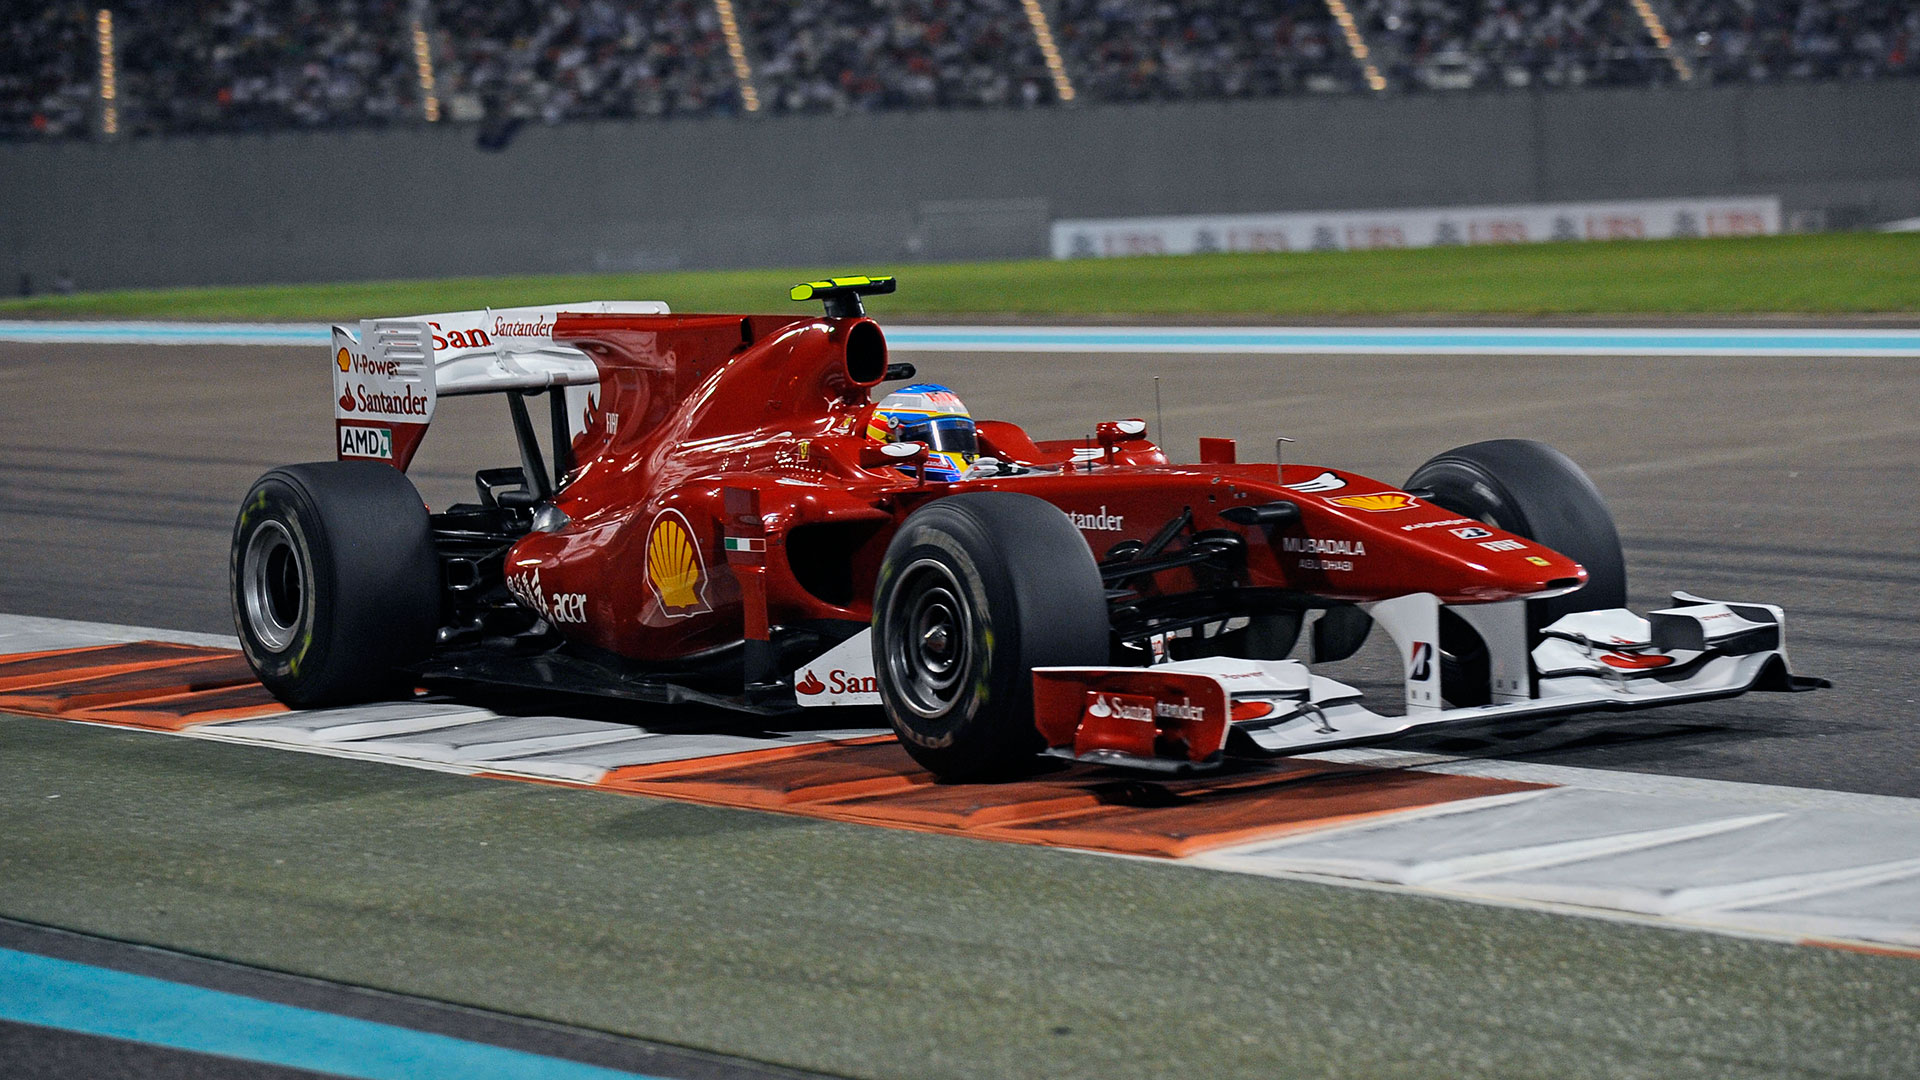 Formula 1 Hd: HD Wallpapers 2010 Formula 1 Grand Prix Of Abu Dhabi